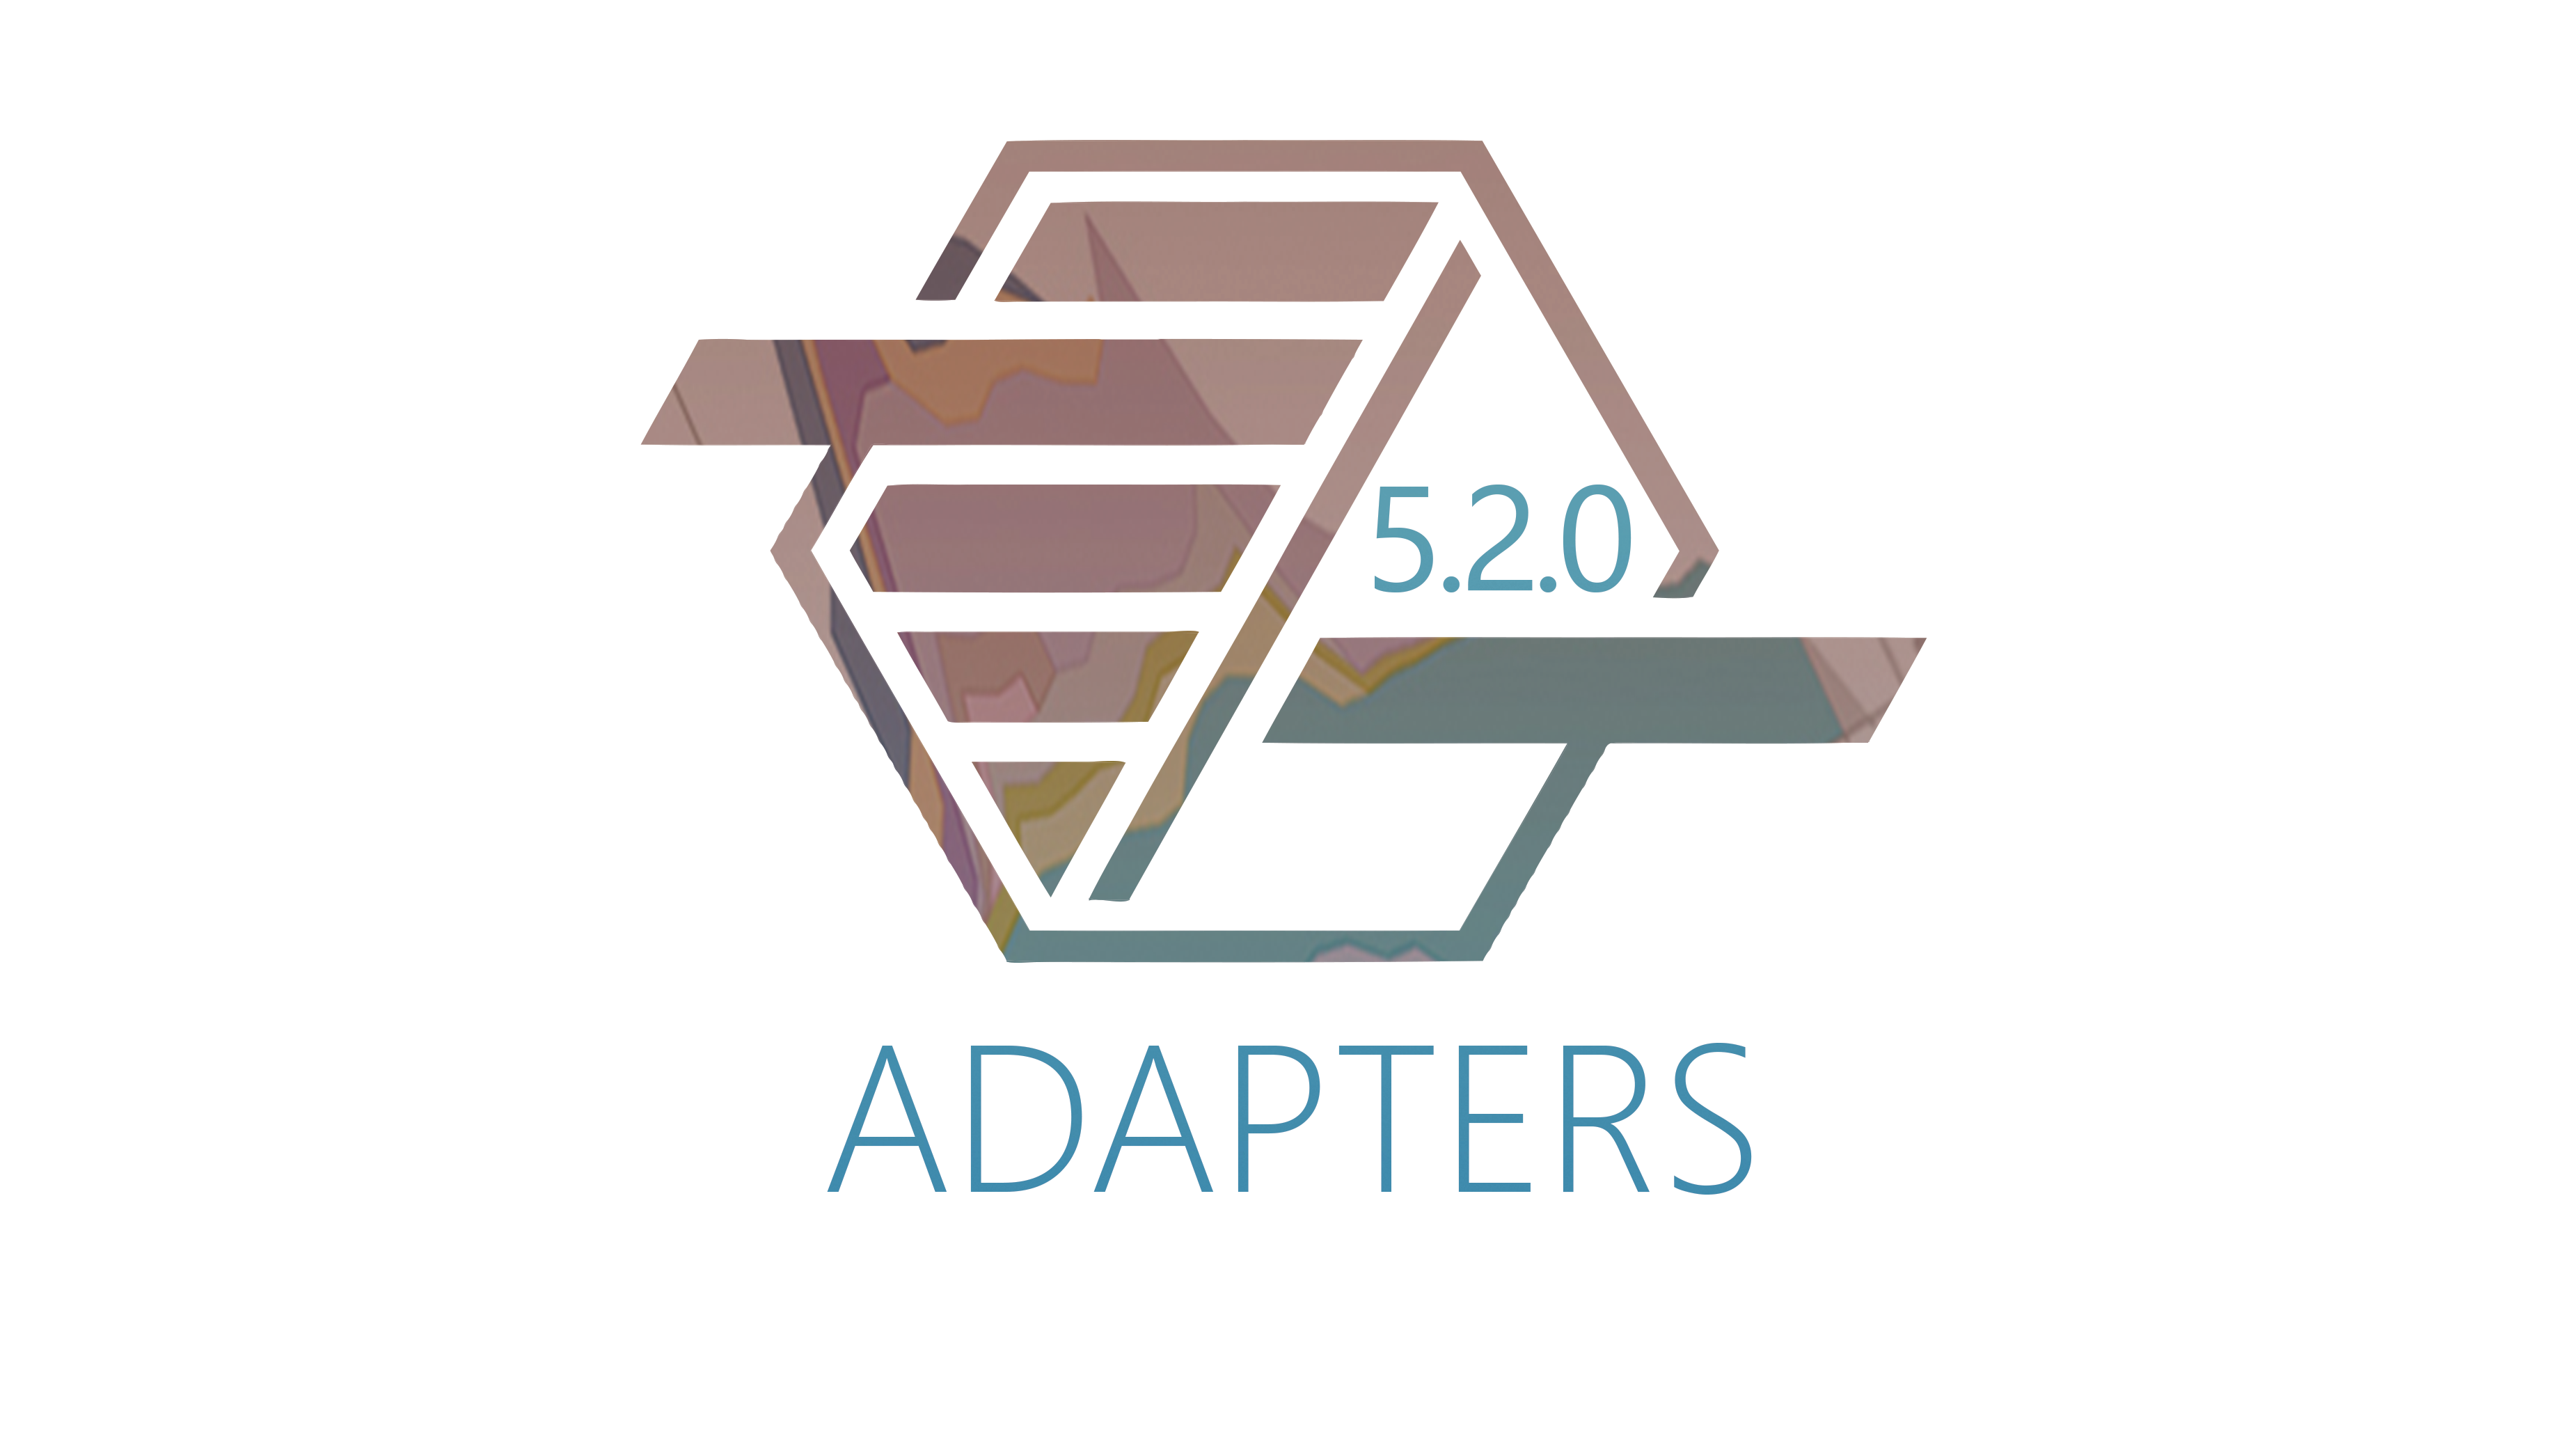 Adapters 5.2.0 Release